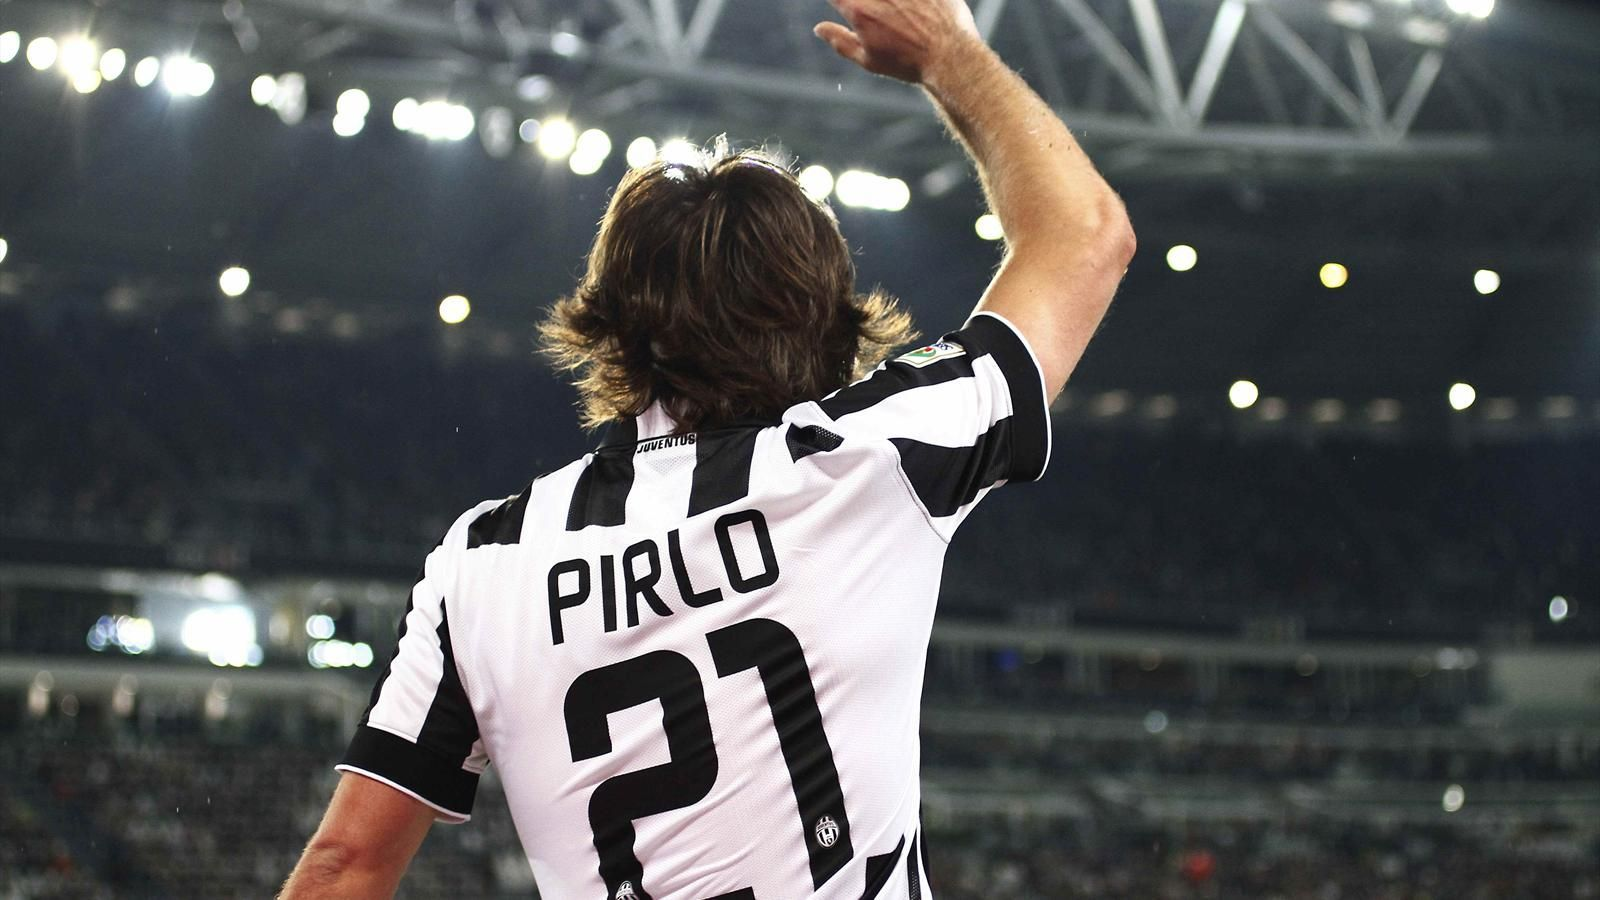 1600x900 - Andrea Pirlo Wallpapers 4